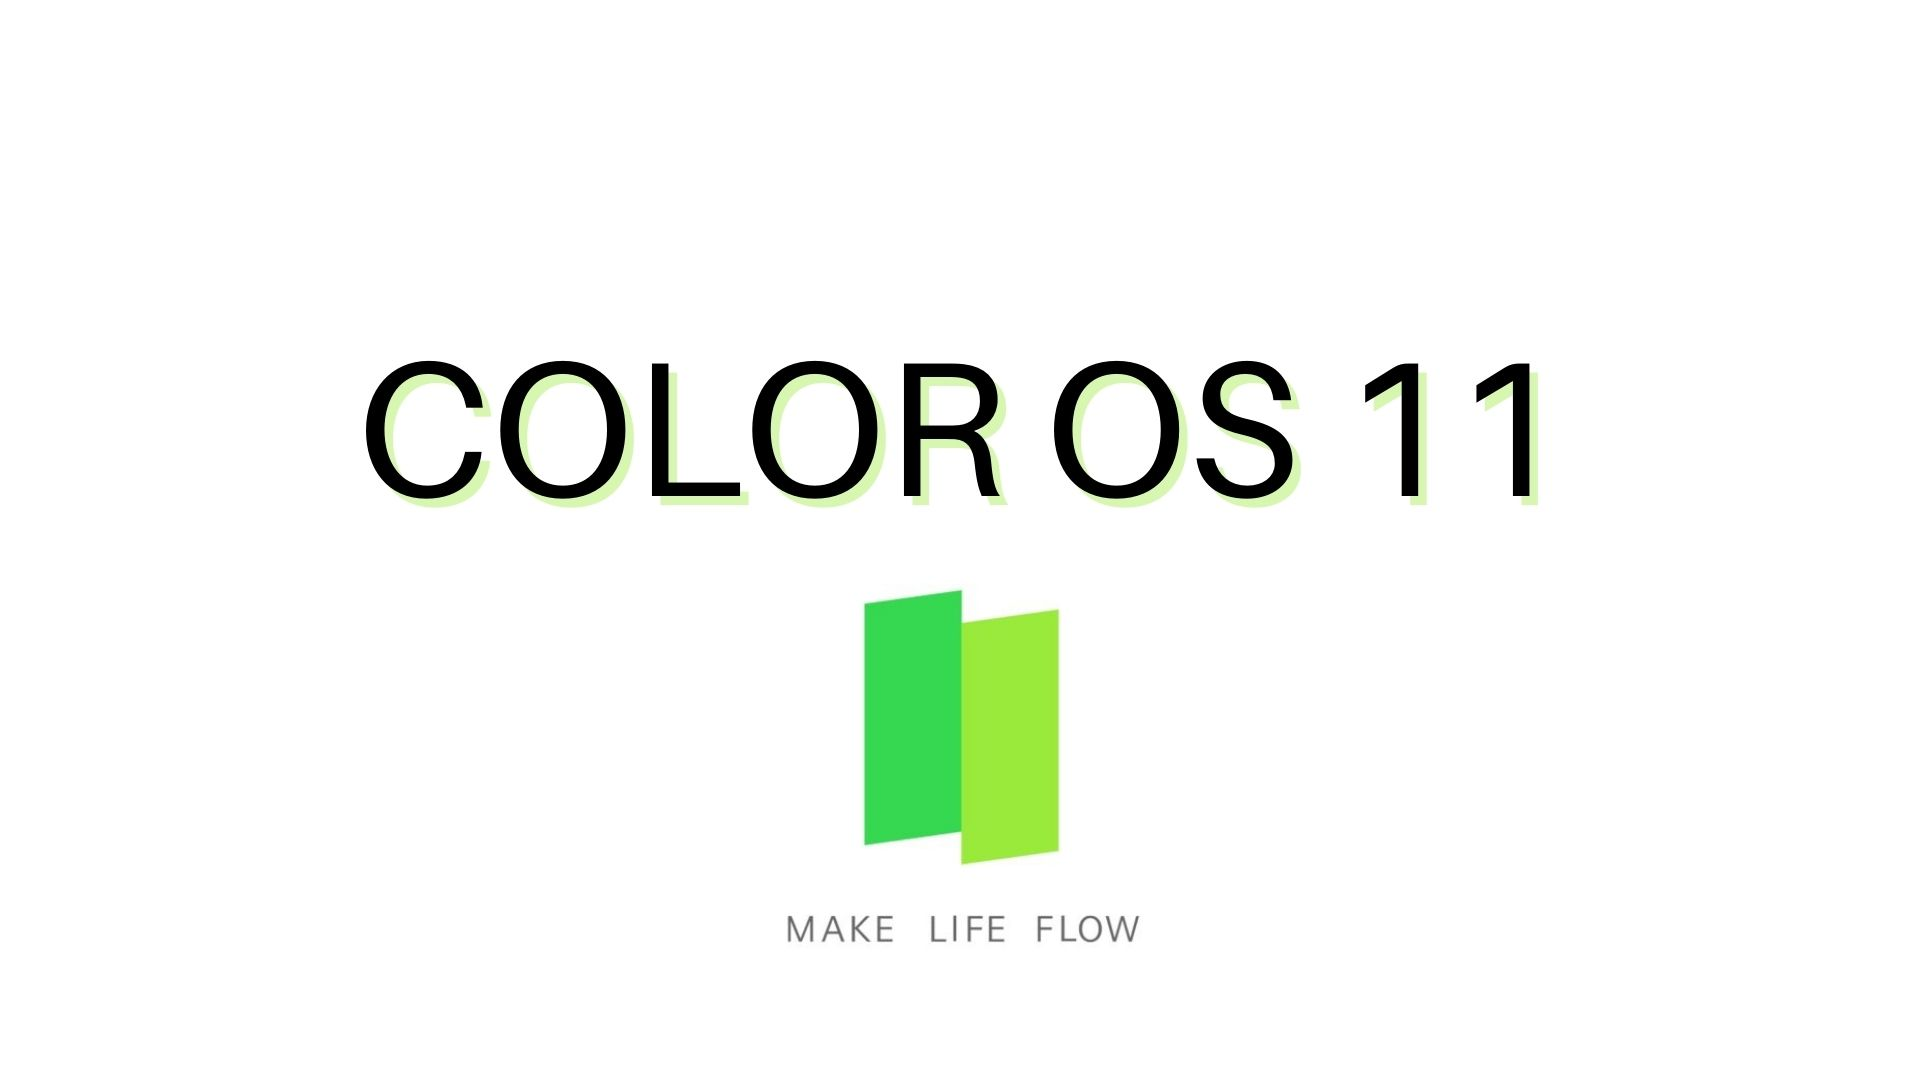 Oppo uncovers ColorOS 11 update plan in India and Europe for March 2021